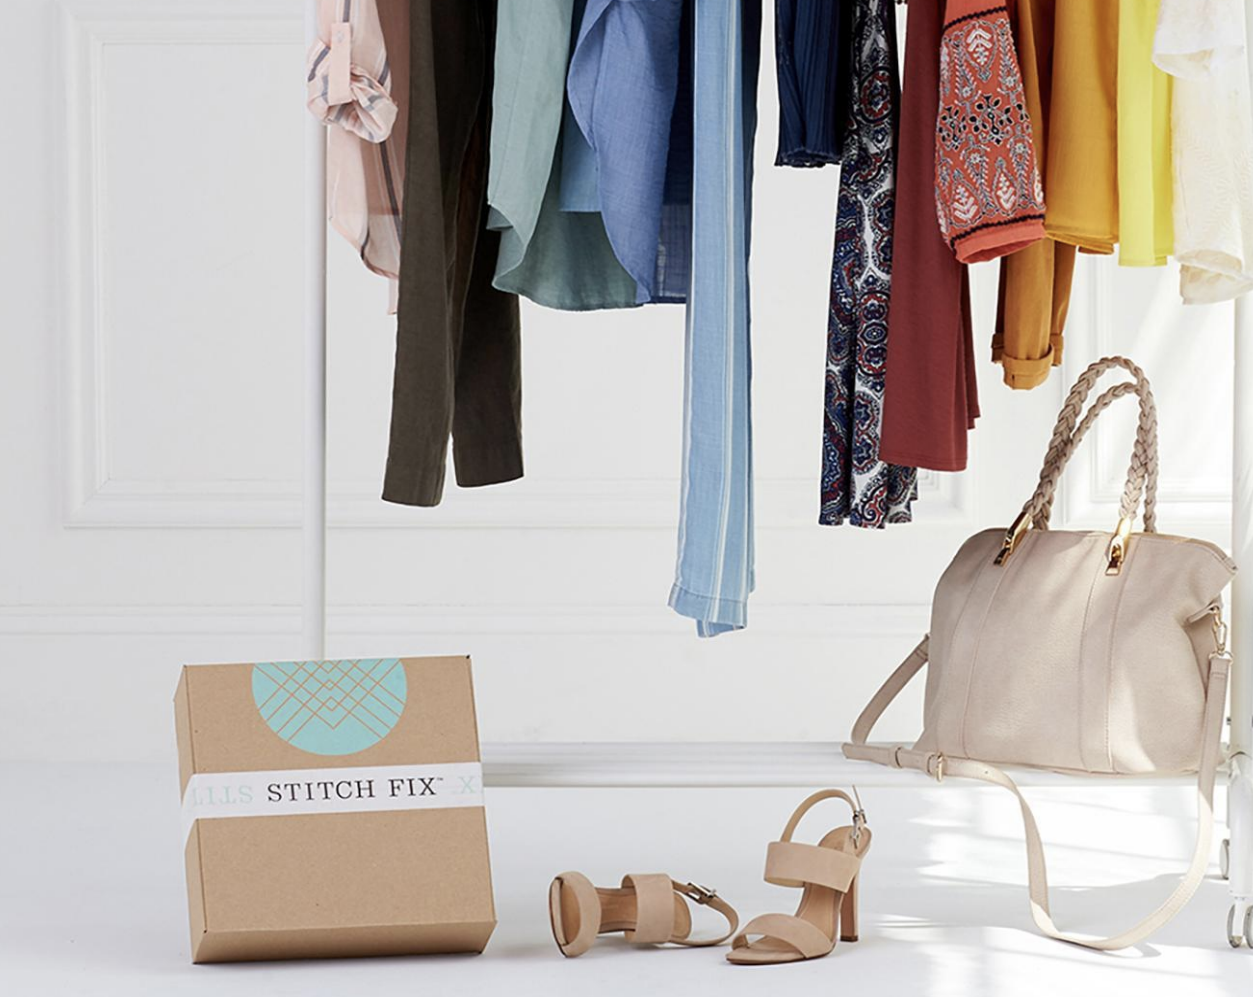 Online personal styling service Stitch Fix beat Wall Street estimates with net revenue of$571.2 million, an increase of 29 percent year over year, in its fourth quarter.